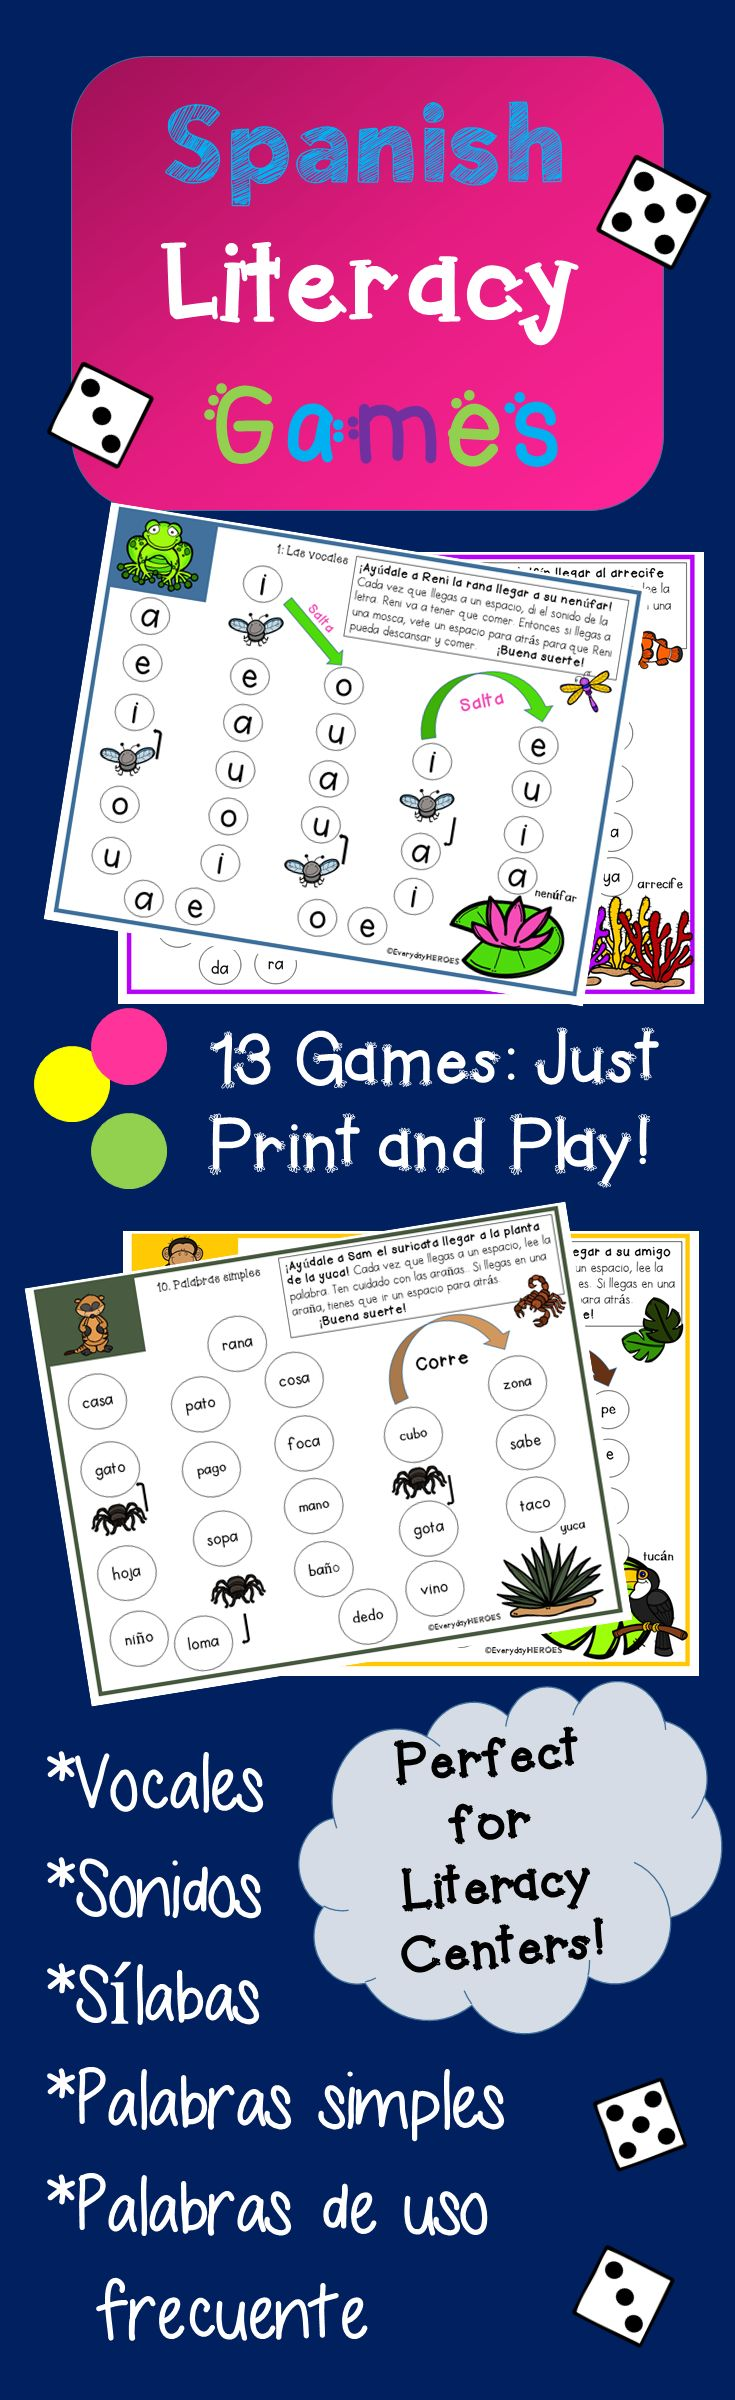 These 13 games will jazz up your students to learn to read in Spanish! They build beginning with vocales, then sonidos, then sílabas, then palabras simples and finish with a few games of palabras de uso frecuente taken from ENIL (nivel 1v - 1 verde). My kids were begging to play them everyday last year. I hope your students enjoy them as well!